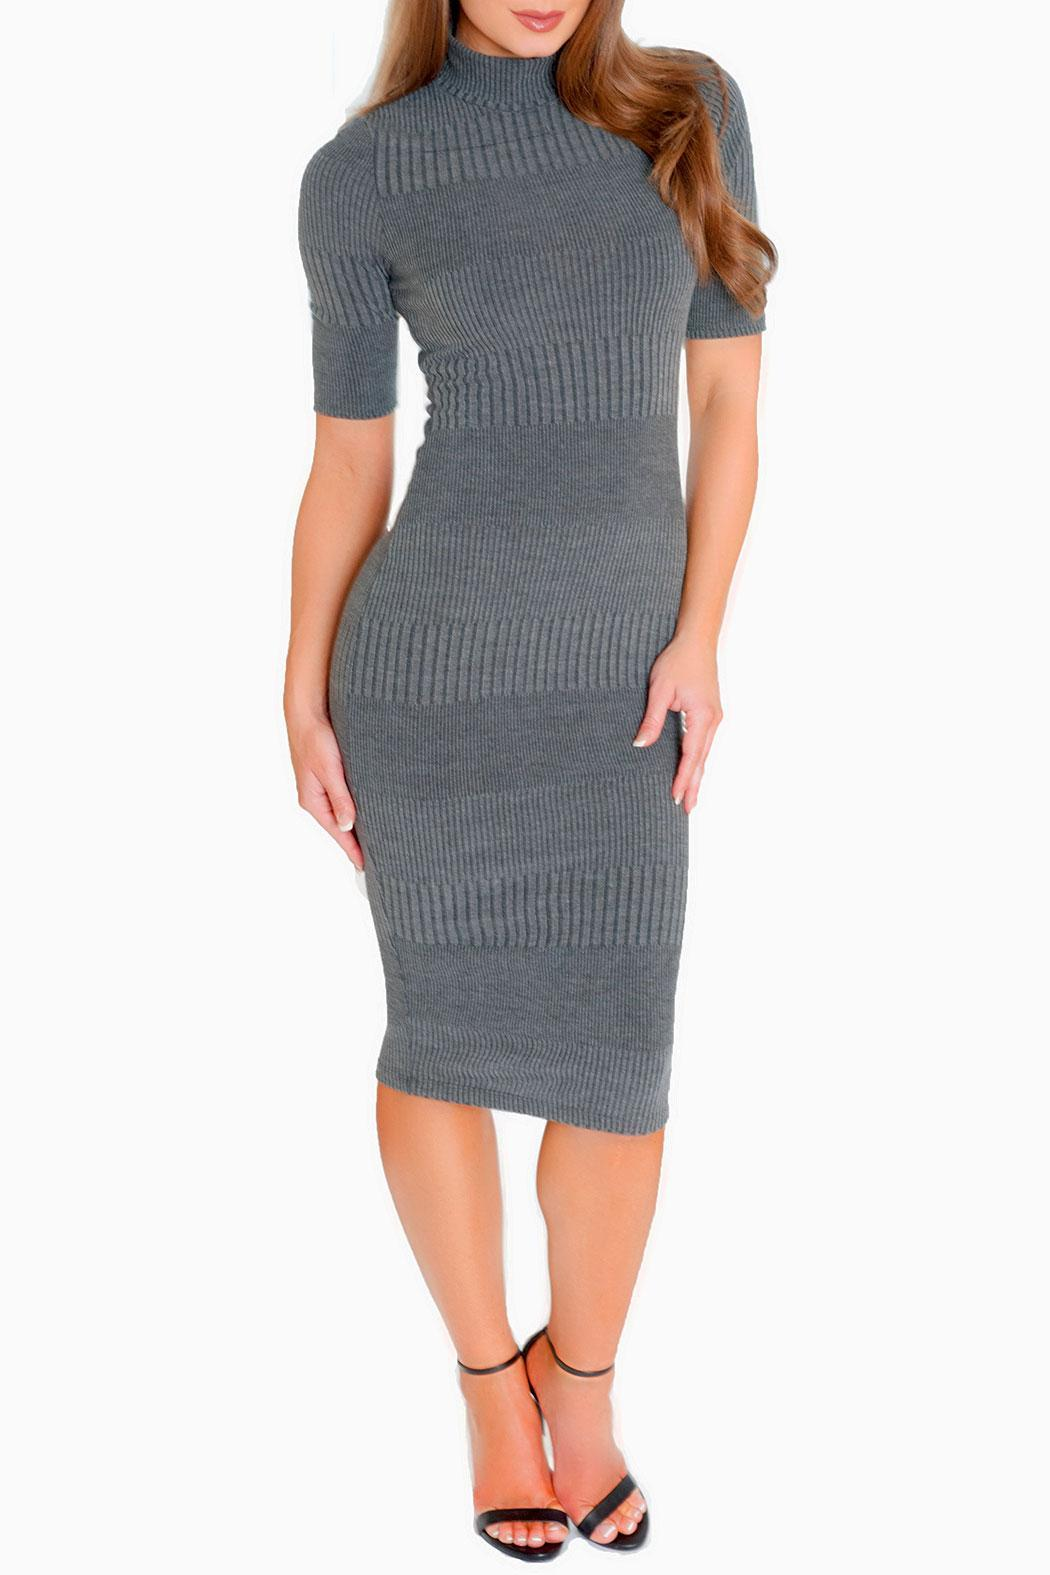 Chynna Dolls Ally Midi Dress - Front Cropped Image